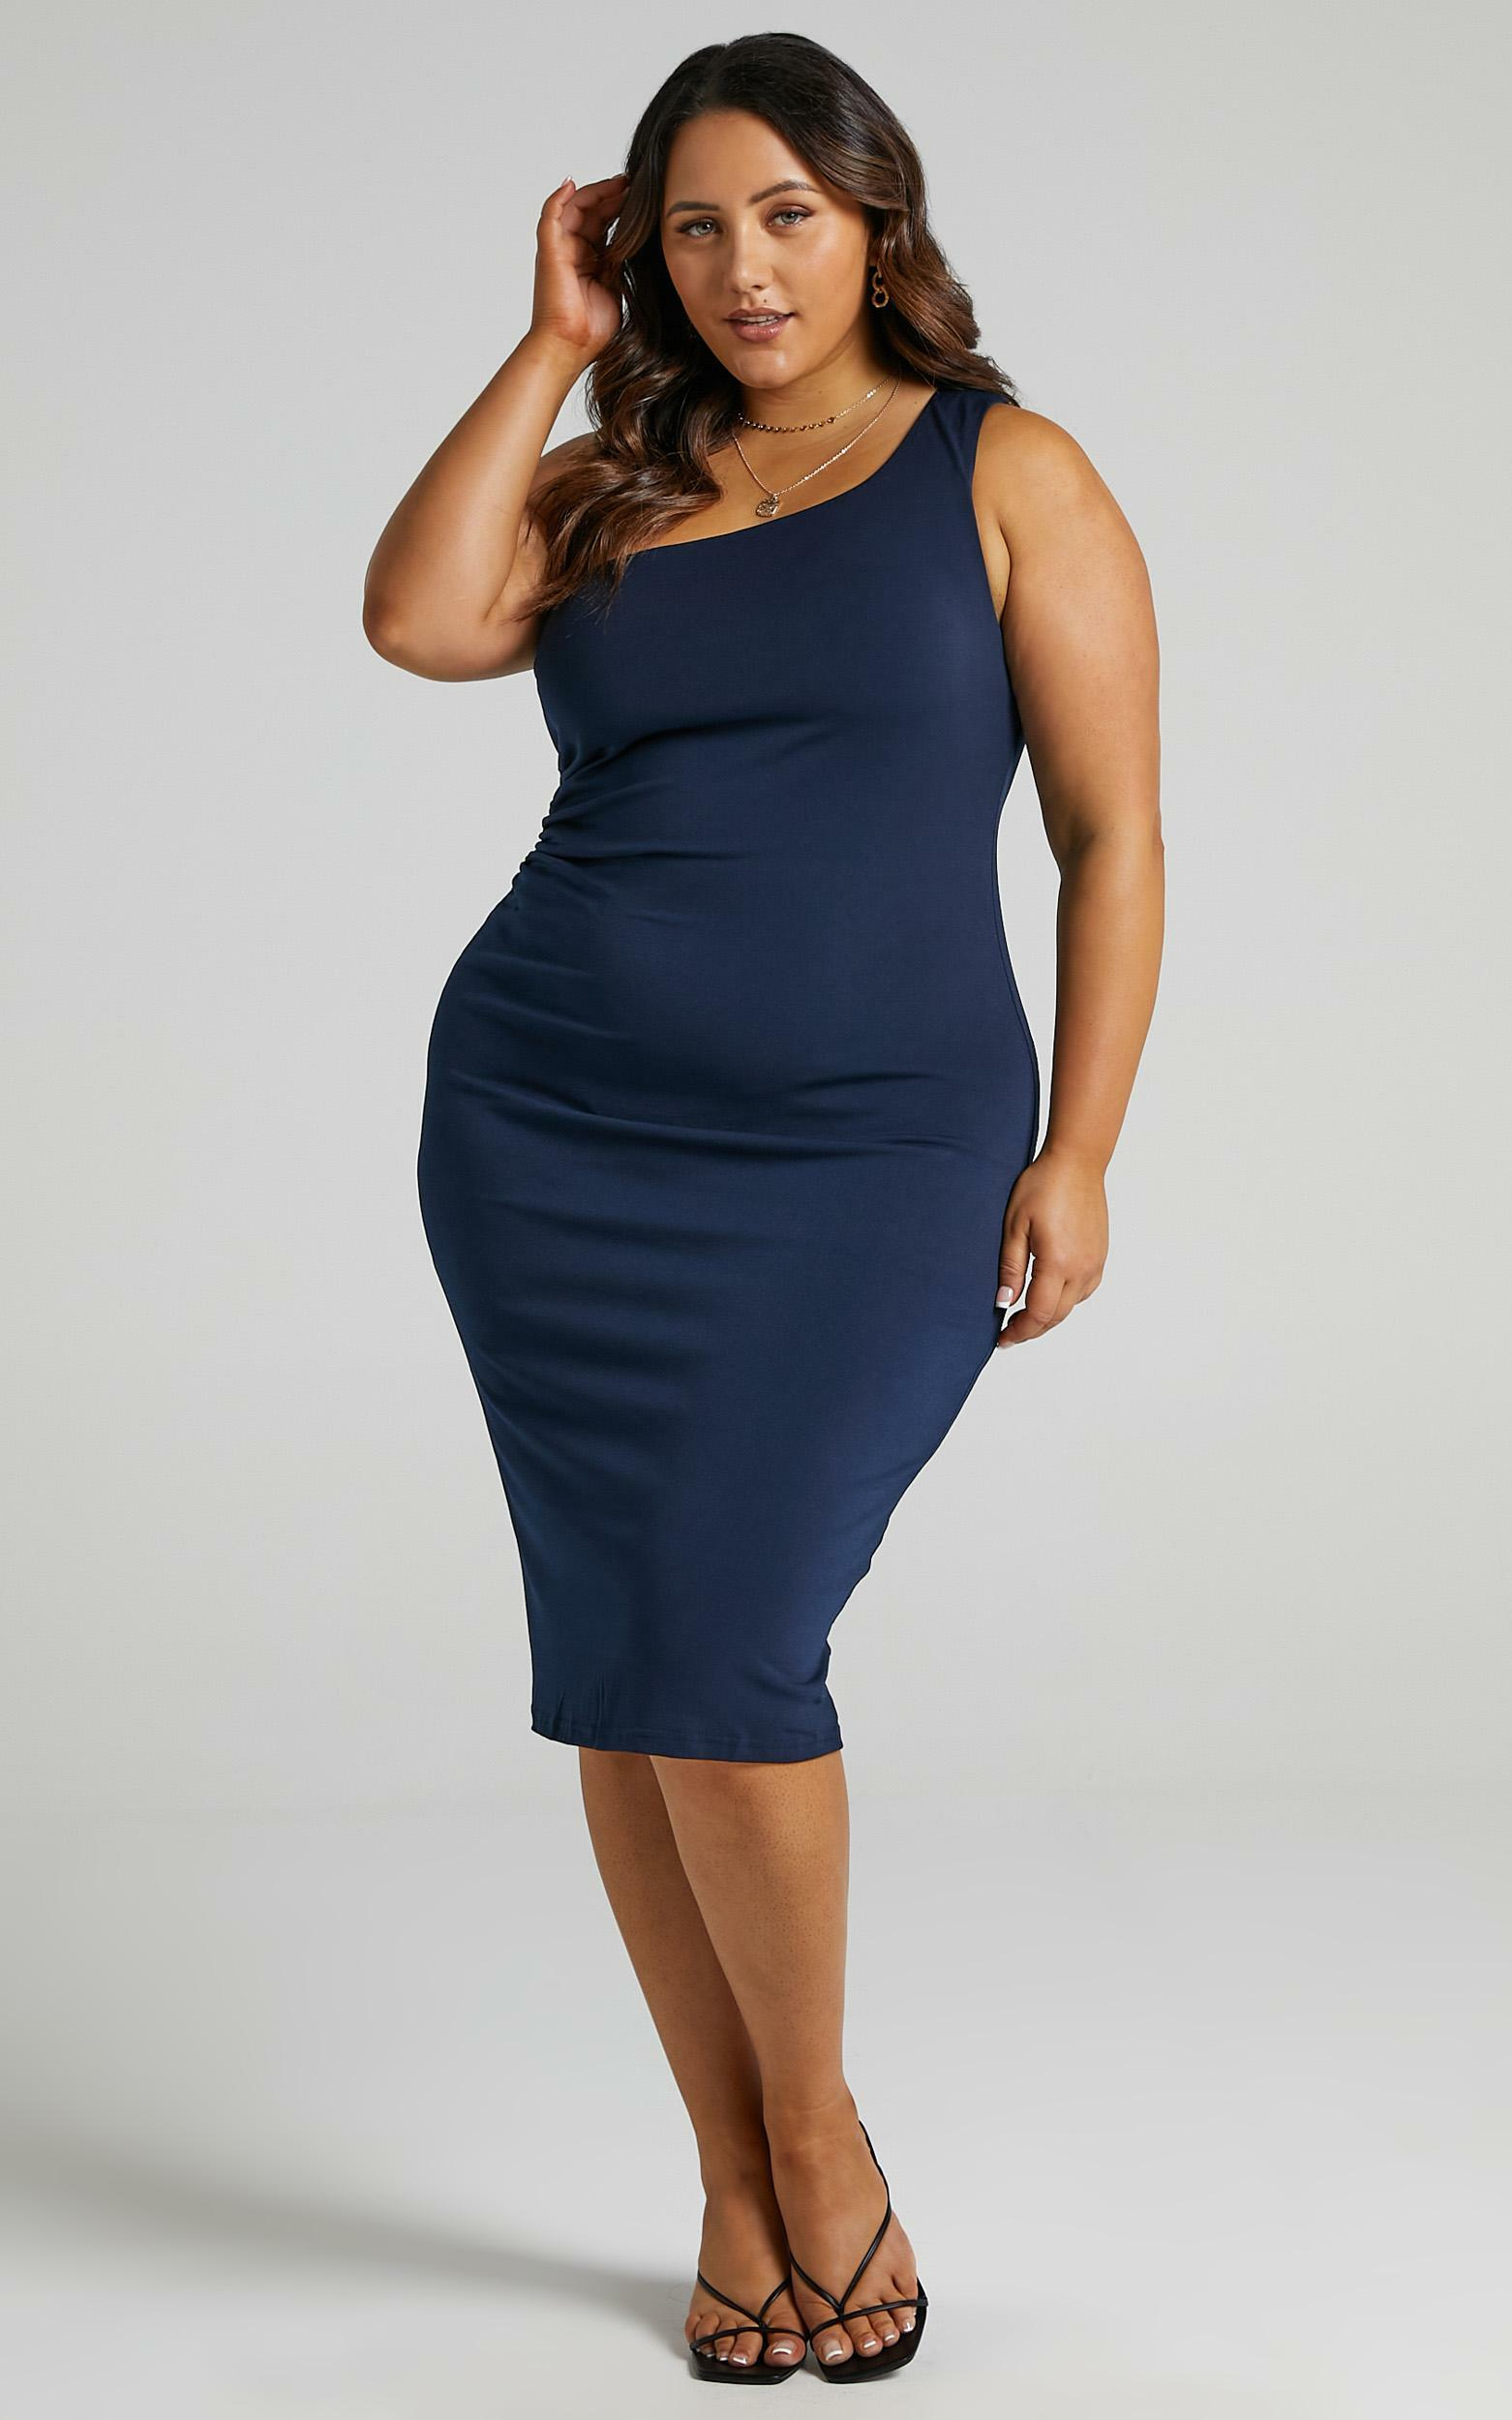 Got Me Looking One Shoulder Bodycon Midi Dress in Navy - 04, NVY5, hi-res image number null